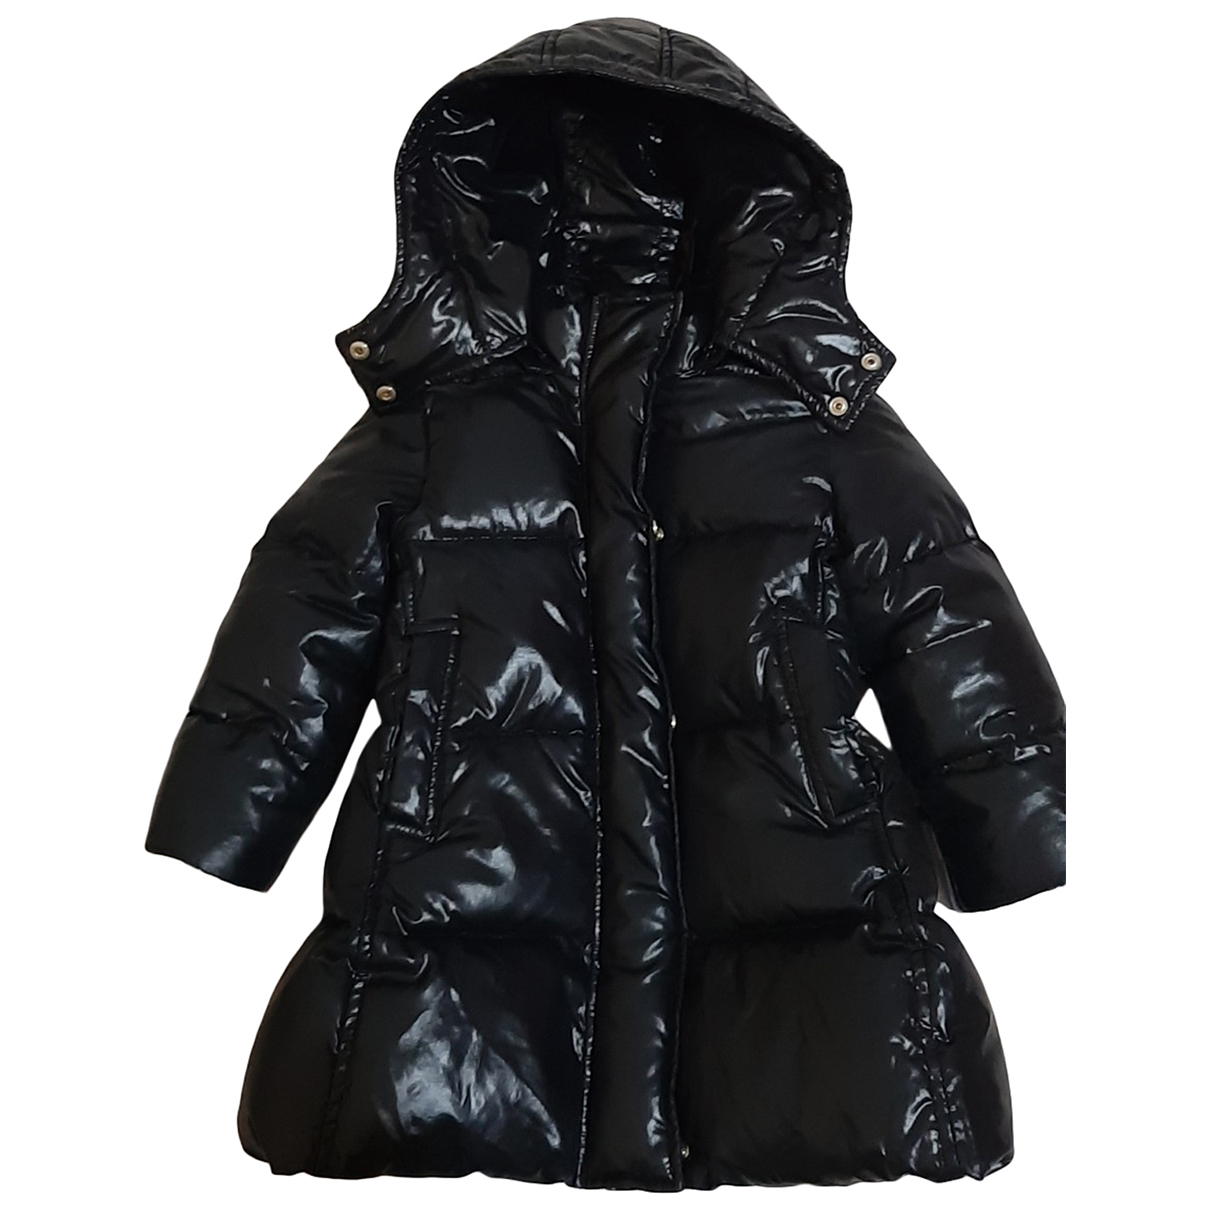 Fay N Black jacket & coat for Kids 2 years - up to 86cm FR